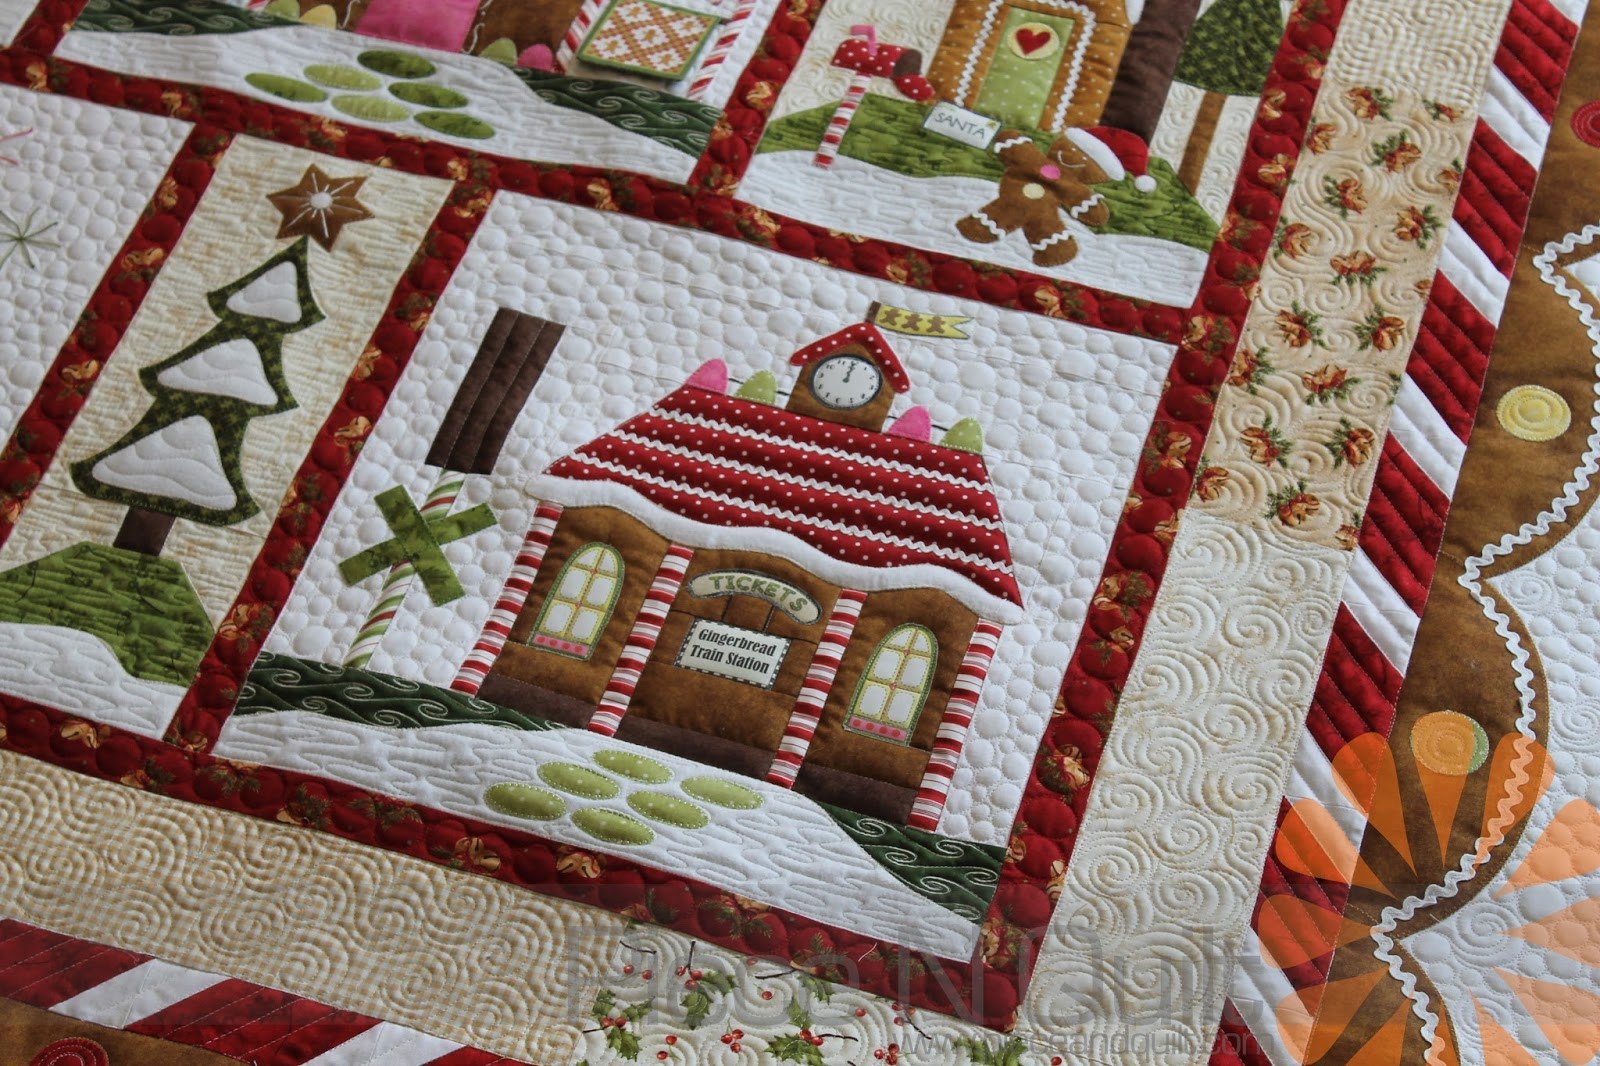 Gingerbread House Quilt Pattern Free : Piece N Quilt: Gingerbread Village Quilt - Custom Machine Quilting by Natalia Bonner